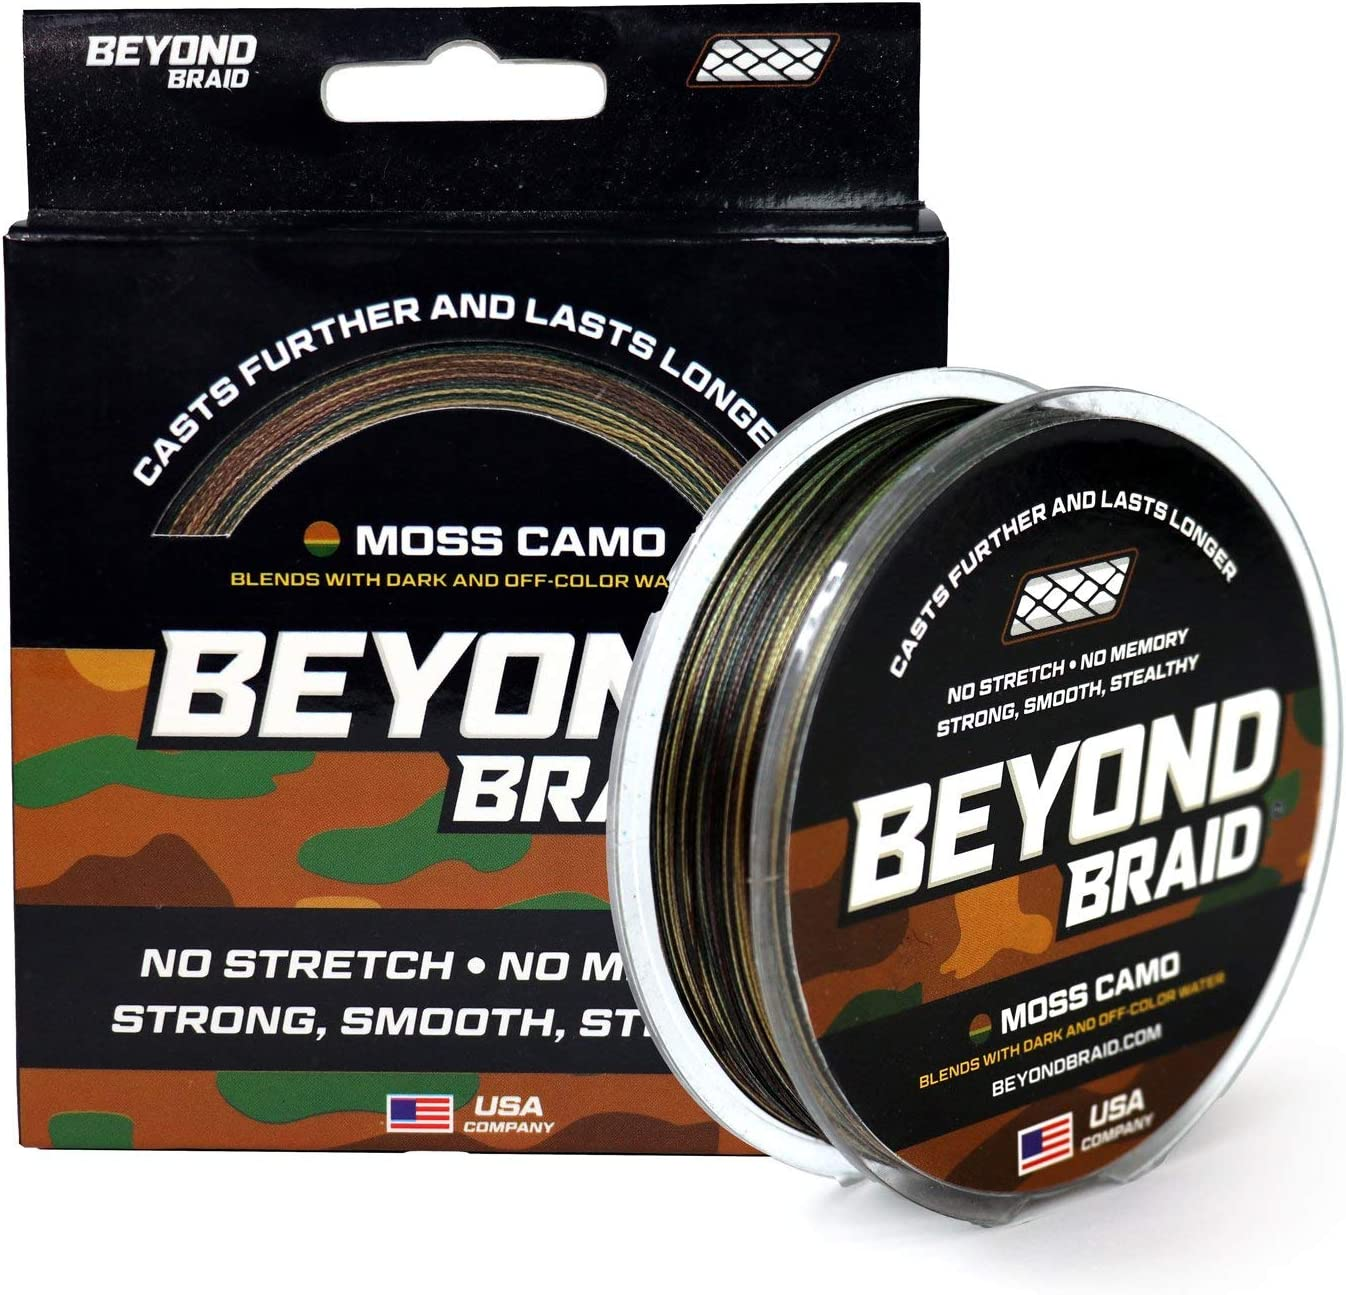 Cheap super special price Beyond Braid Genuine Braided Fishing Line Stre Abrasion No - Resistant